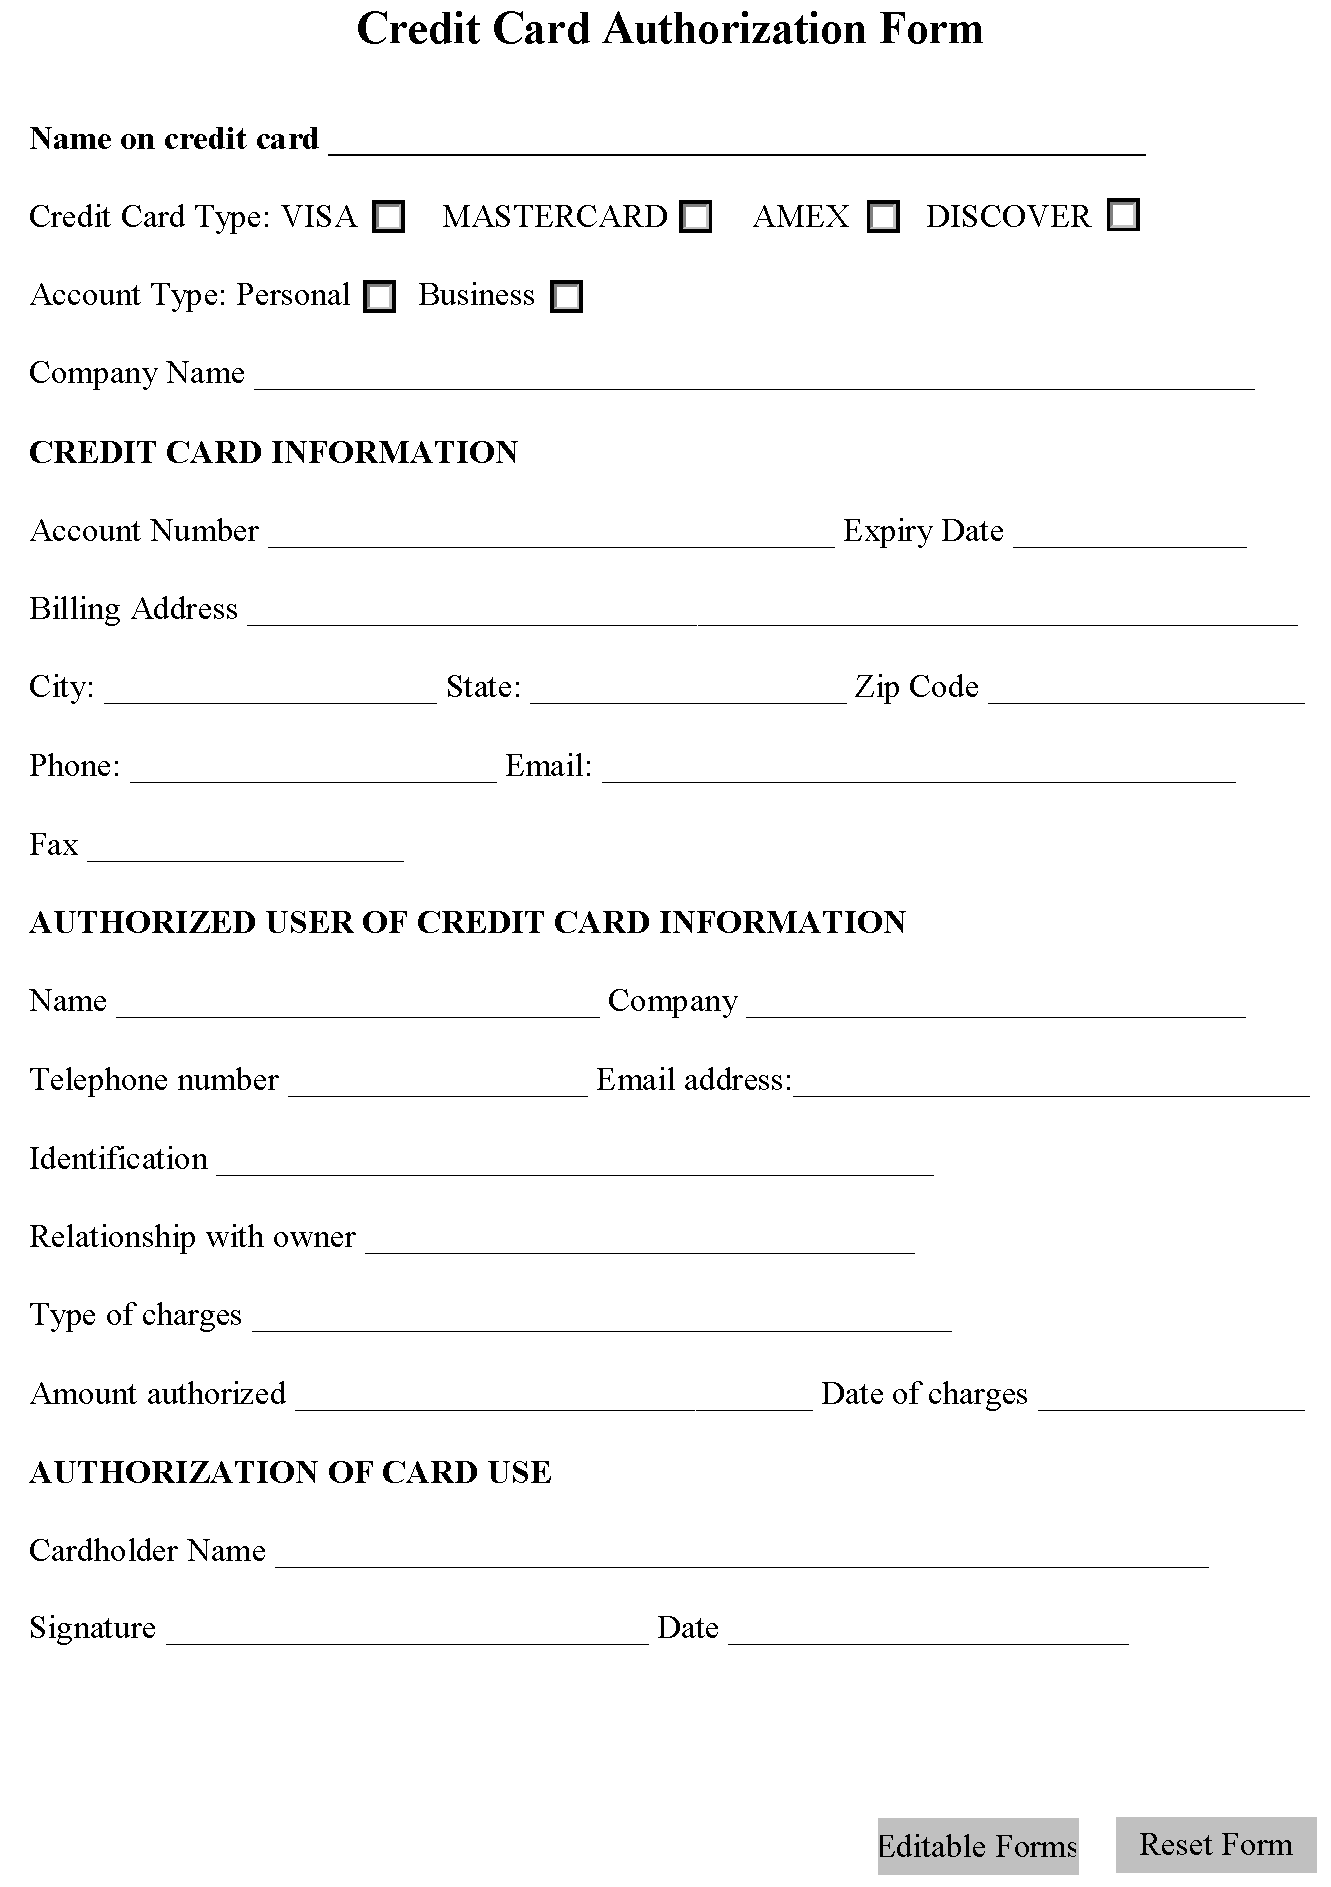 credit card authorization form editable forms